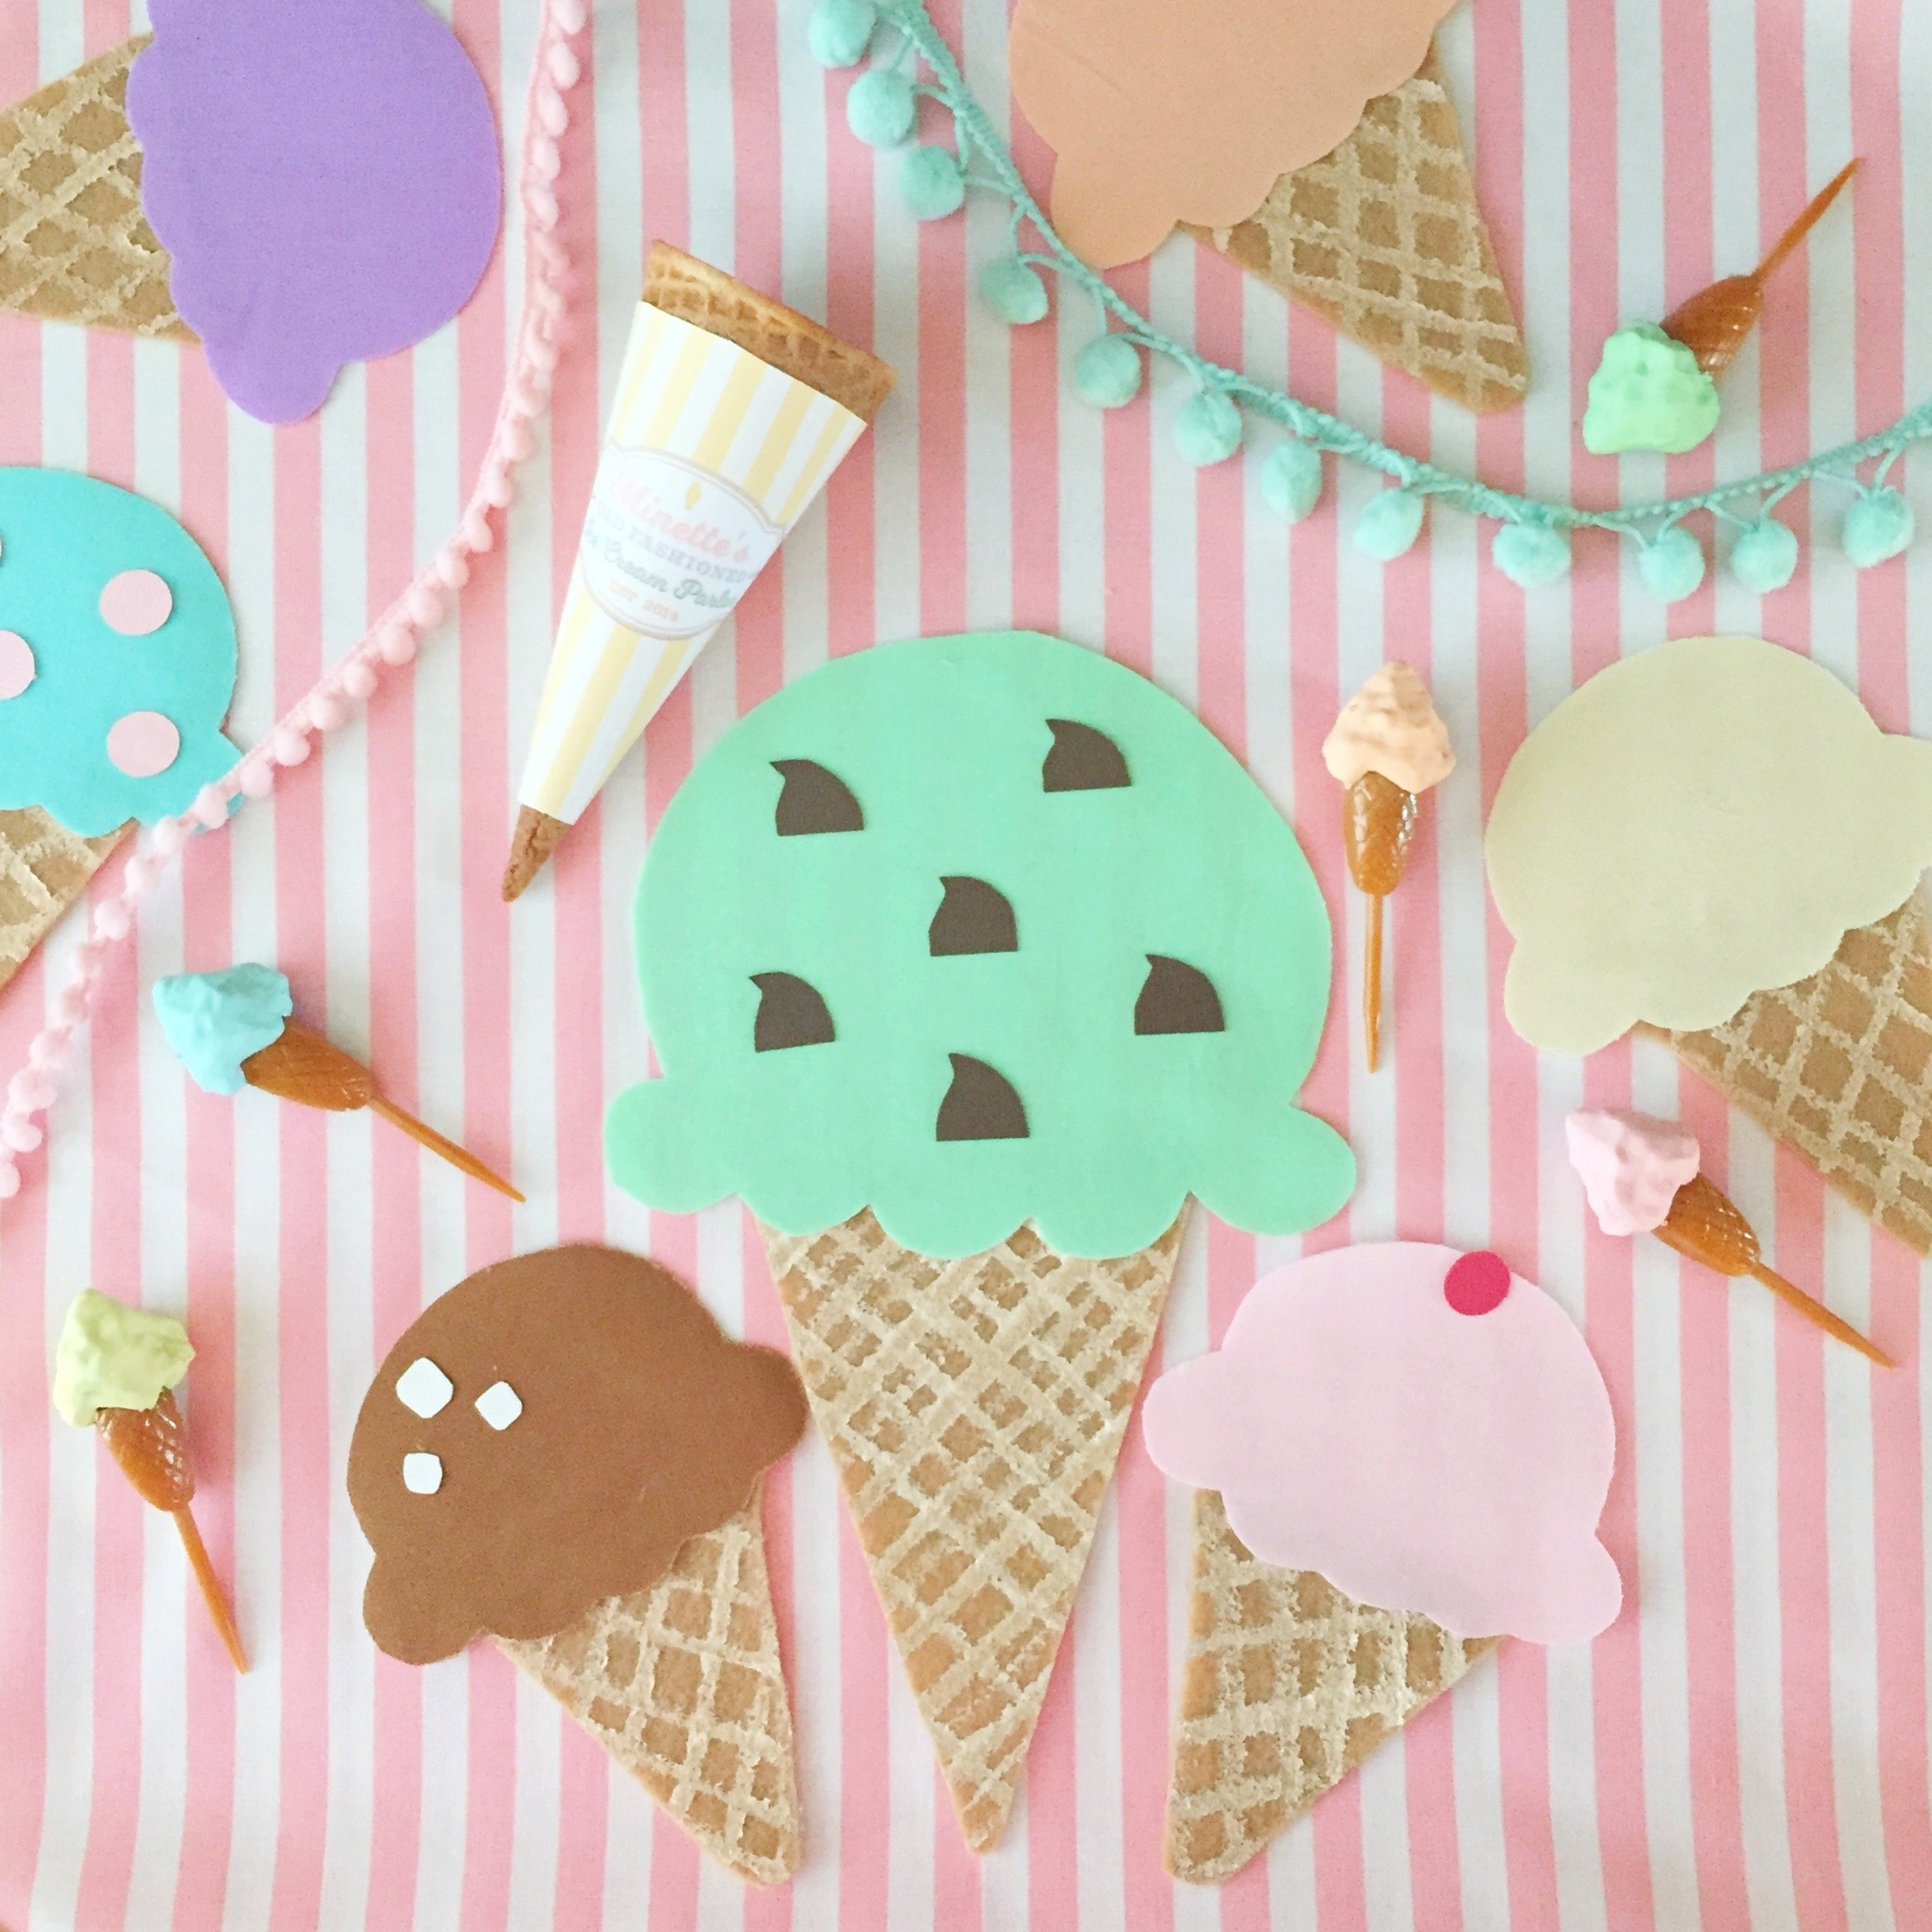 10 Fabulous Ice Cream Birthday Party Ideas vintage ice cream parlor partyminted and vintage dessert stand 2020